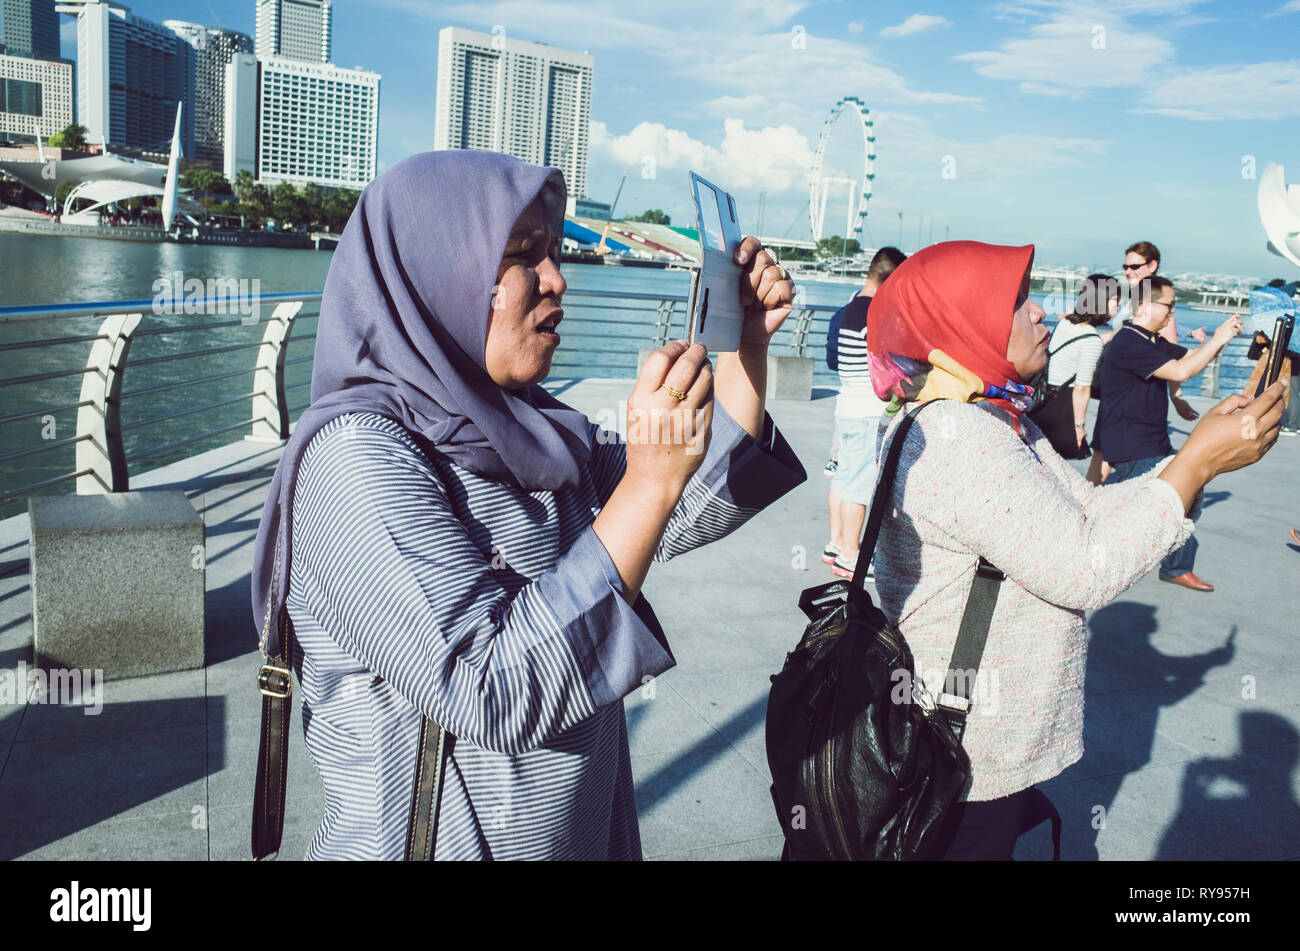 Muslim tourist women in purple and red hijabs, taking vacation photos at Marina Bay, Singapore - Stock Image